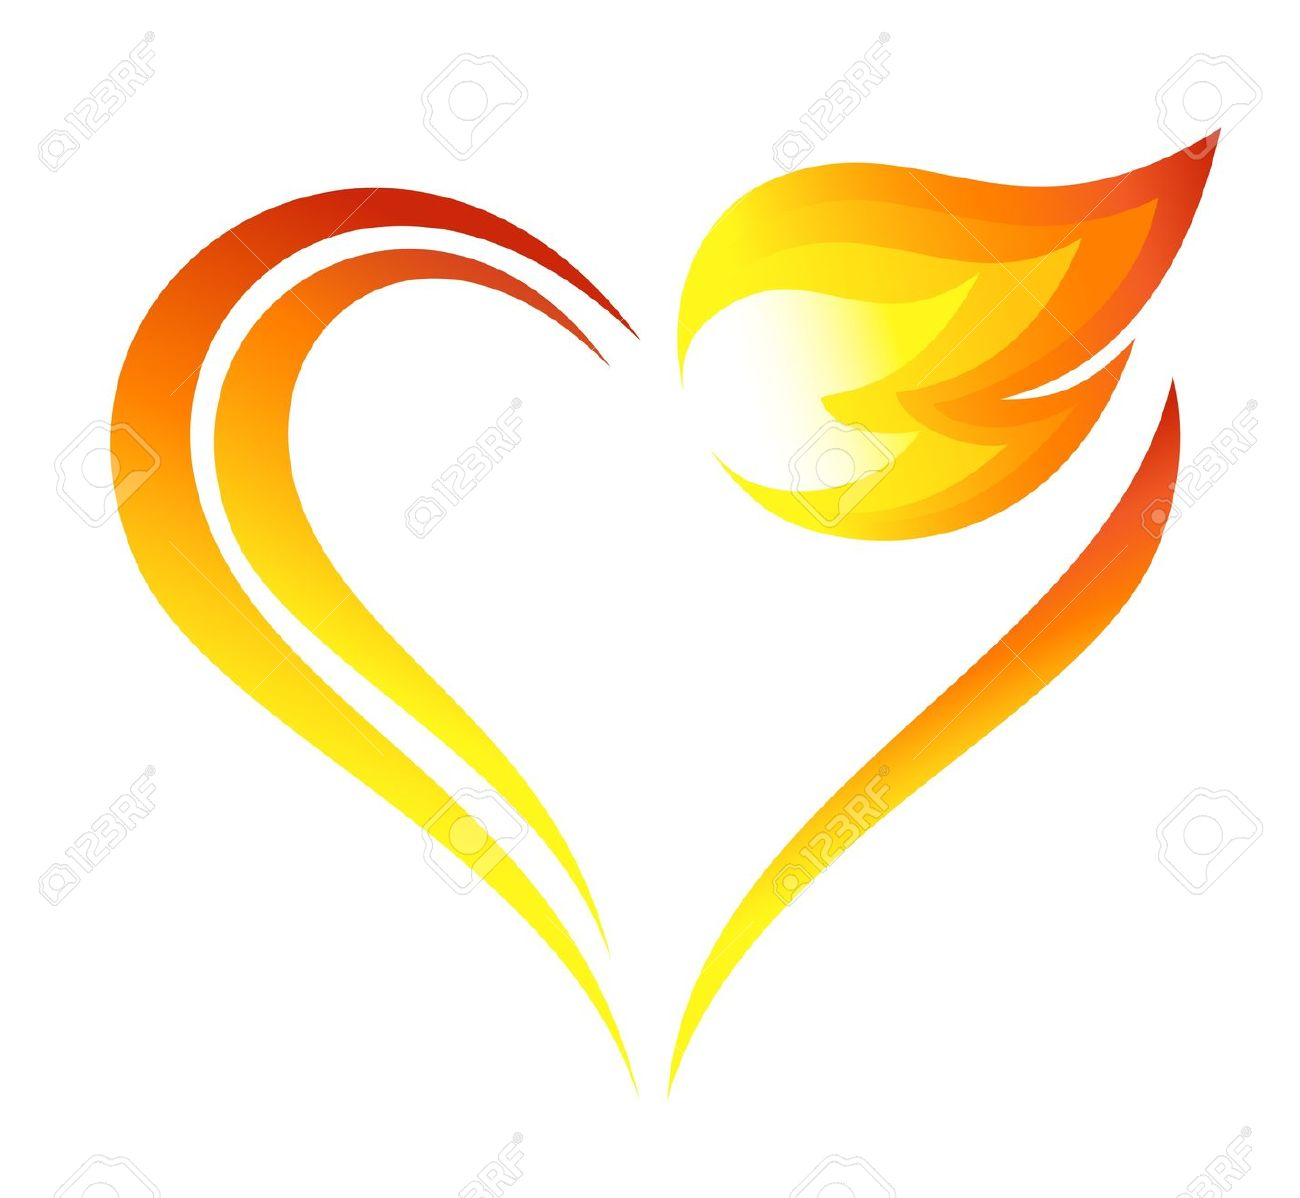 1300x1198 Collection Of Heart On Fire Clipart High Quality, Free